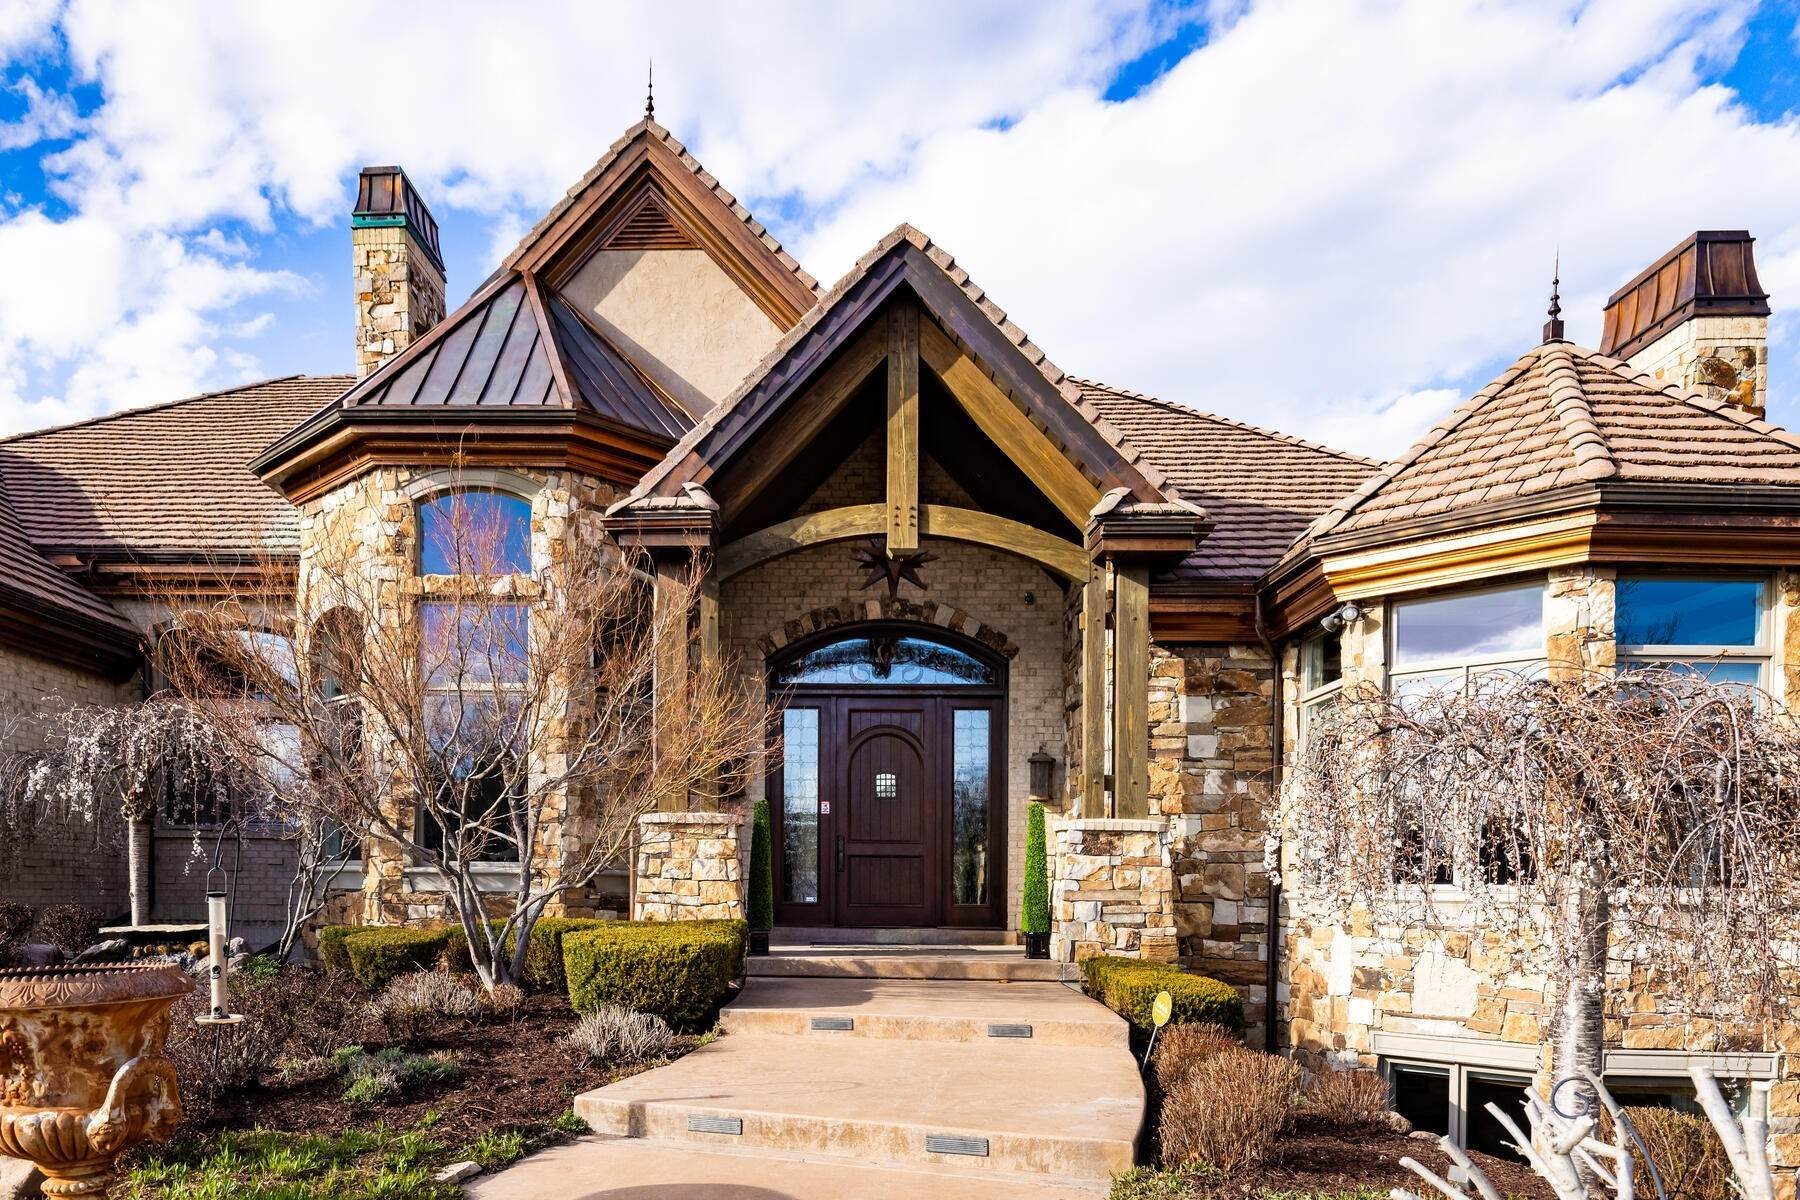 Property for Sale at Beautiful Riverfront Estate 1937 E Siesta Dr Sandy, Utah 84093 United States